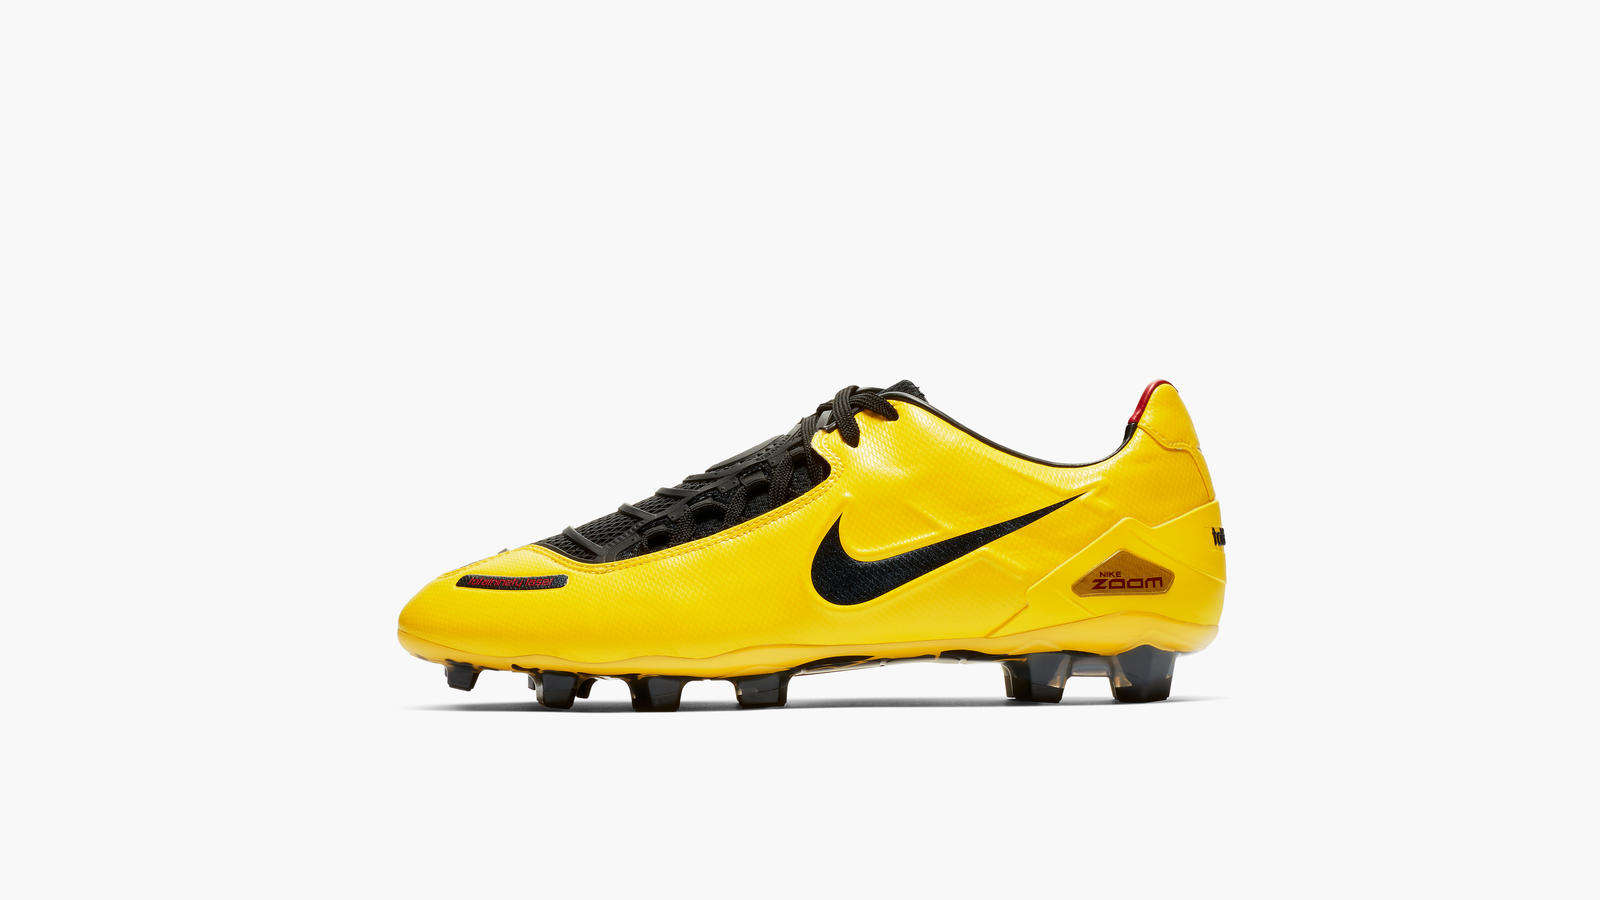 2021b8e1e9b2 March 21, 2019 - Celebrating the remarkable legacy of a Nike Football  classic, the Nike Total 90 Laser returns in a limited special edition.